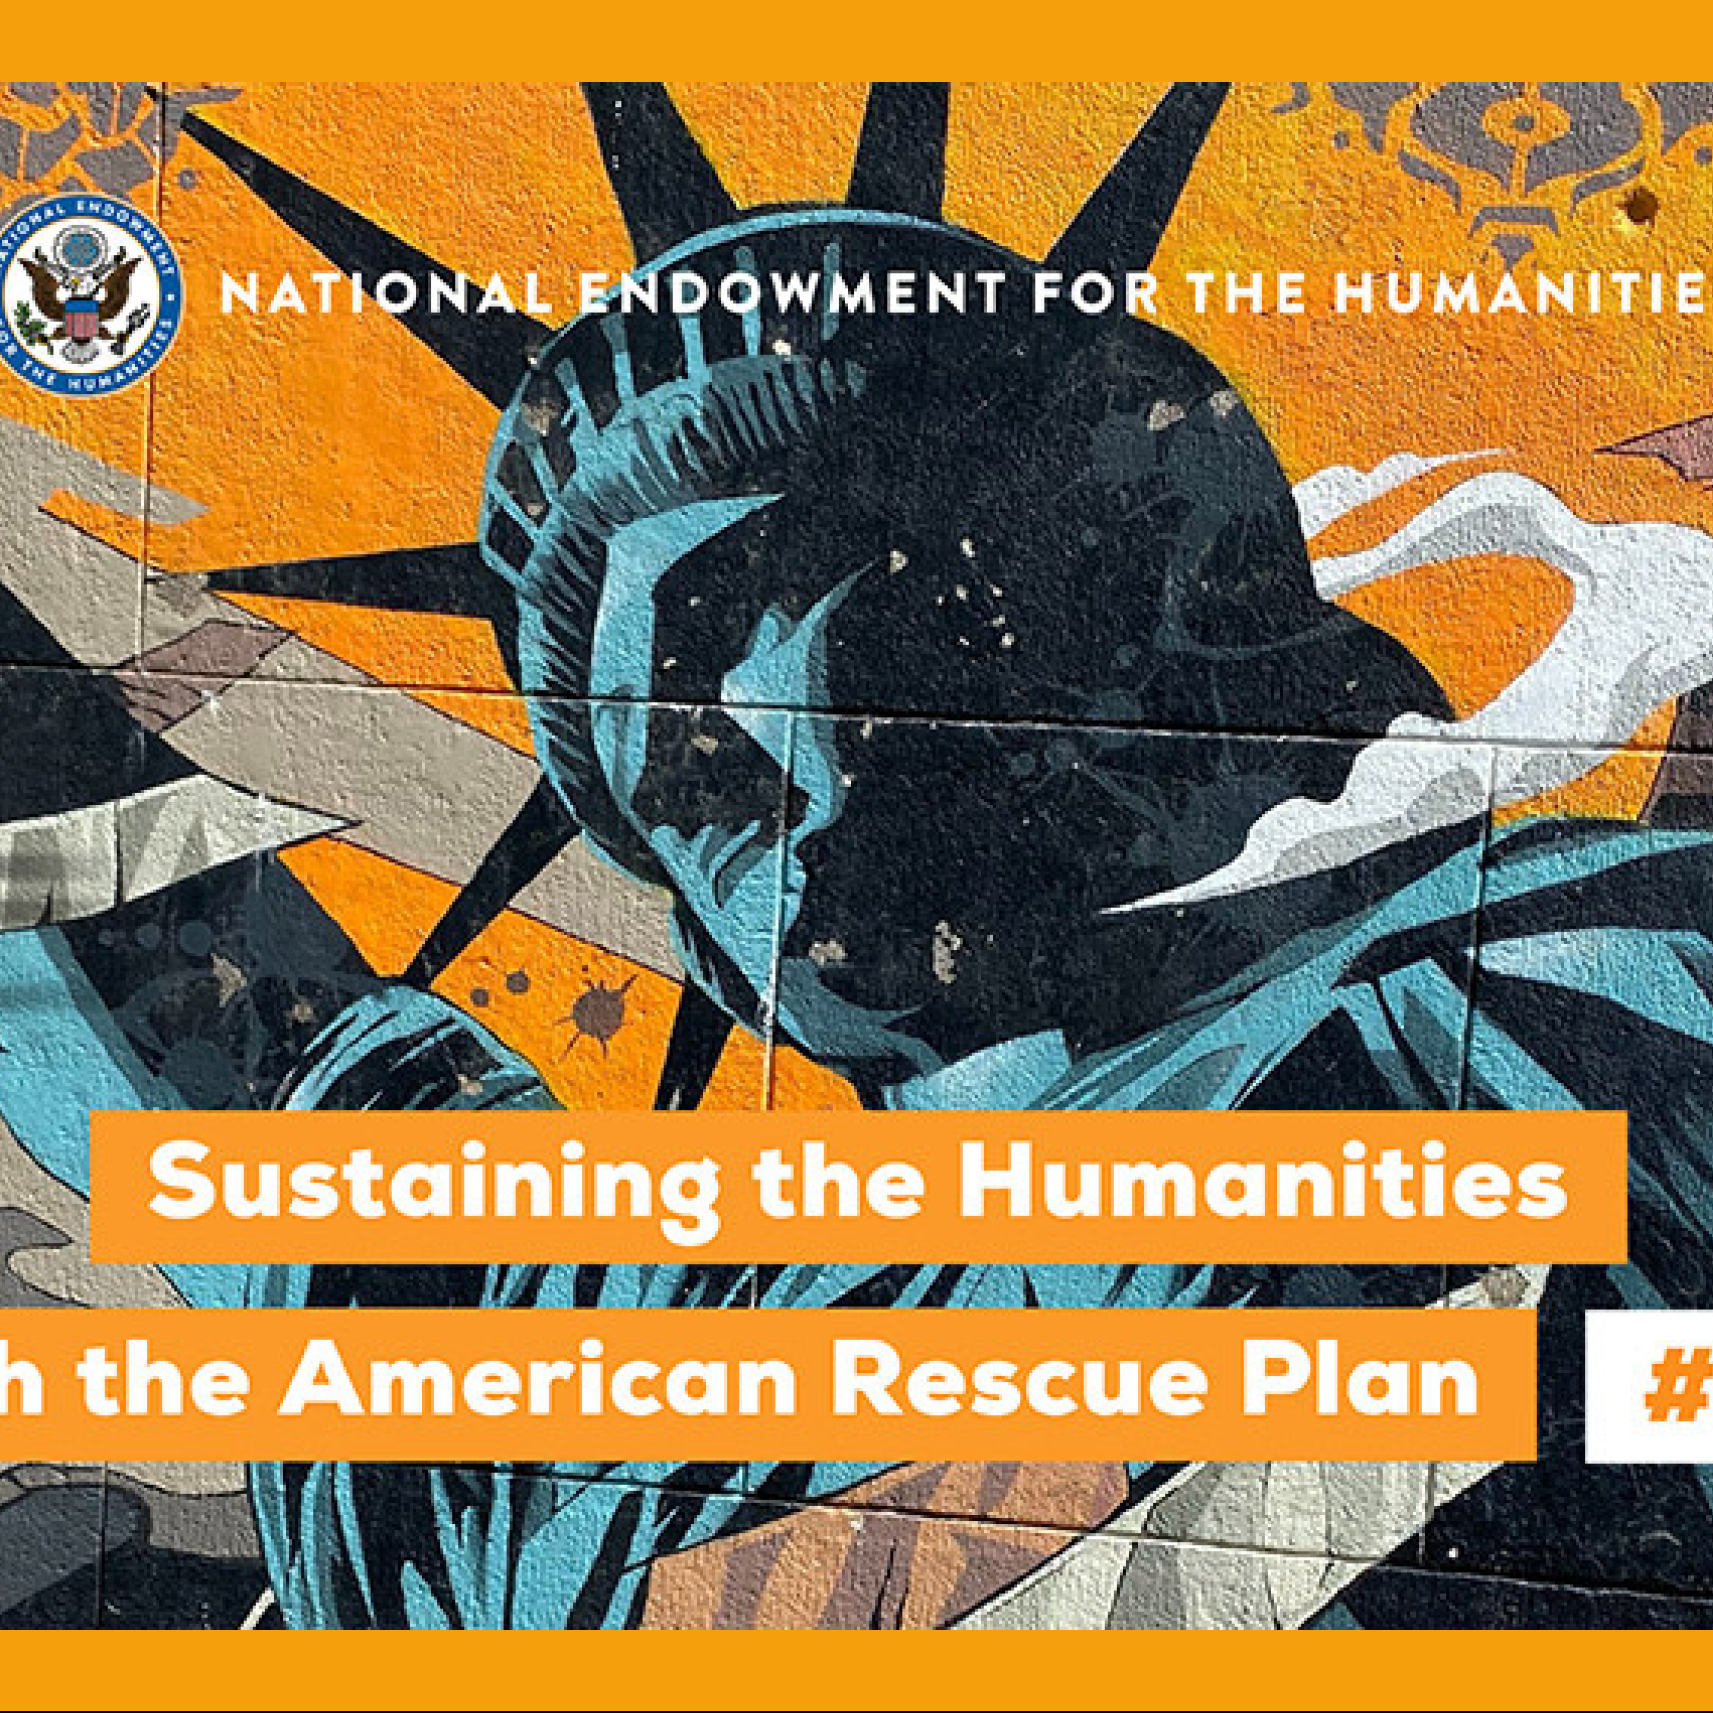 Sustaining the humanities through the American Rescue Plan.